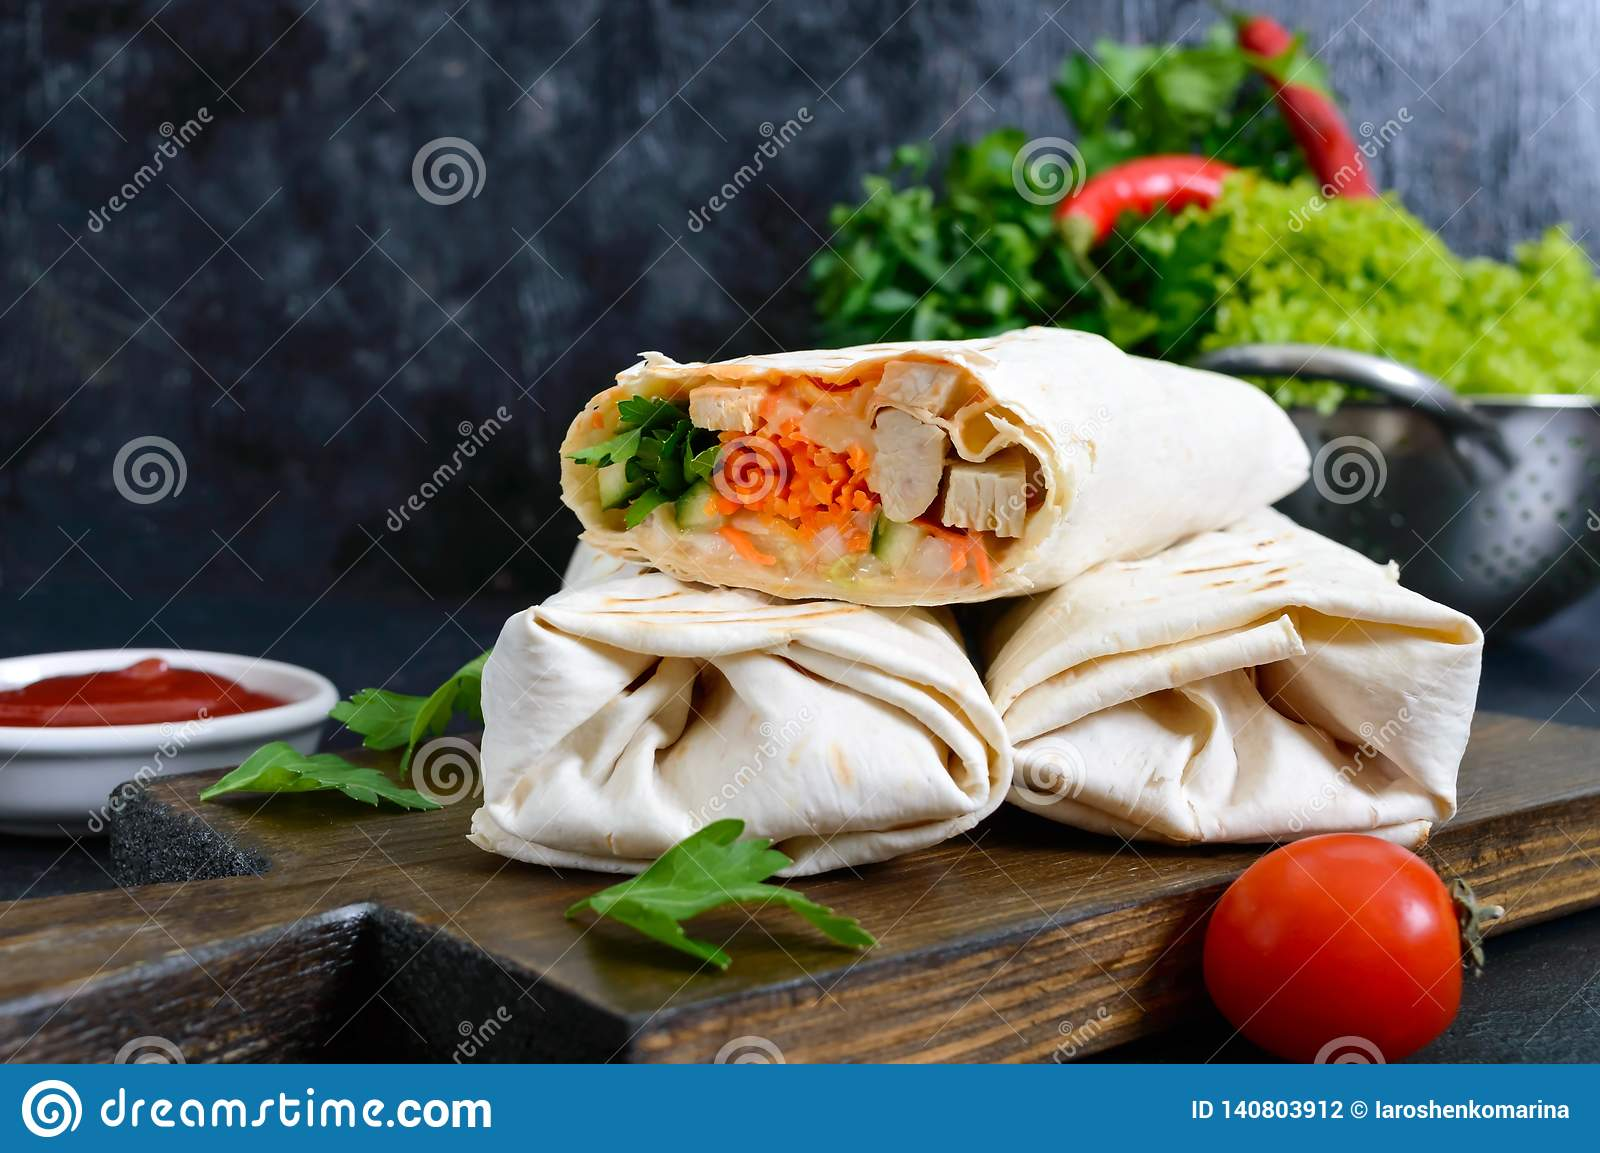 Delicious shawarma sandwich on a black background. Burritos wraps with grilled chicken and vegetables, greens.